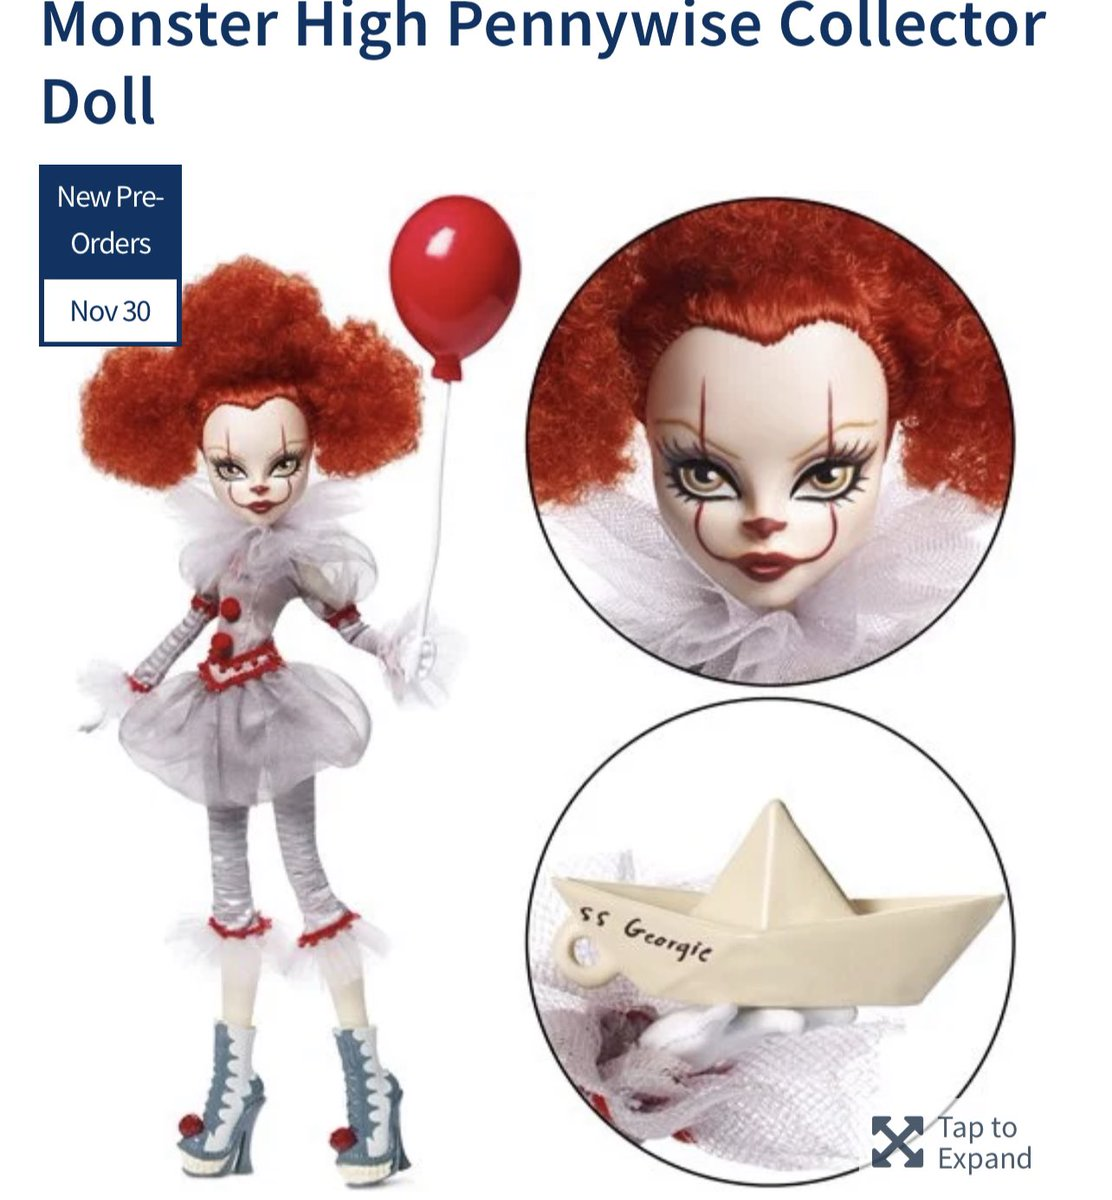 Preorder Now: Monster High Pennywise Collector Doll! #Mattel #Ad .